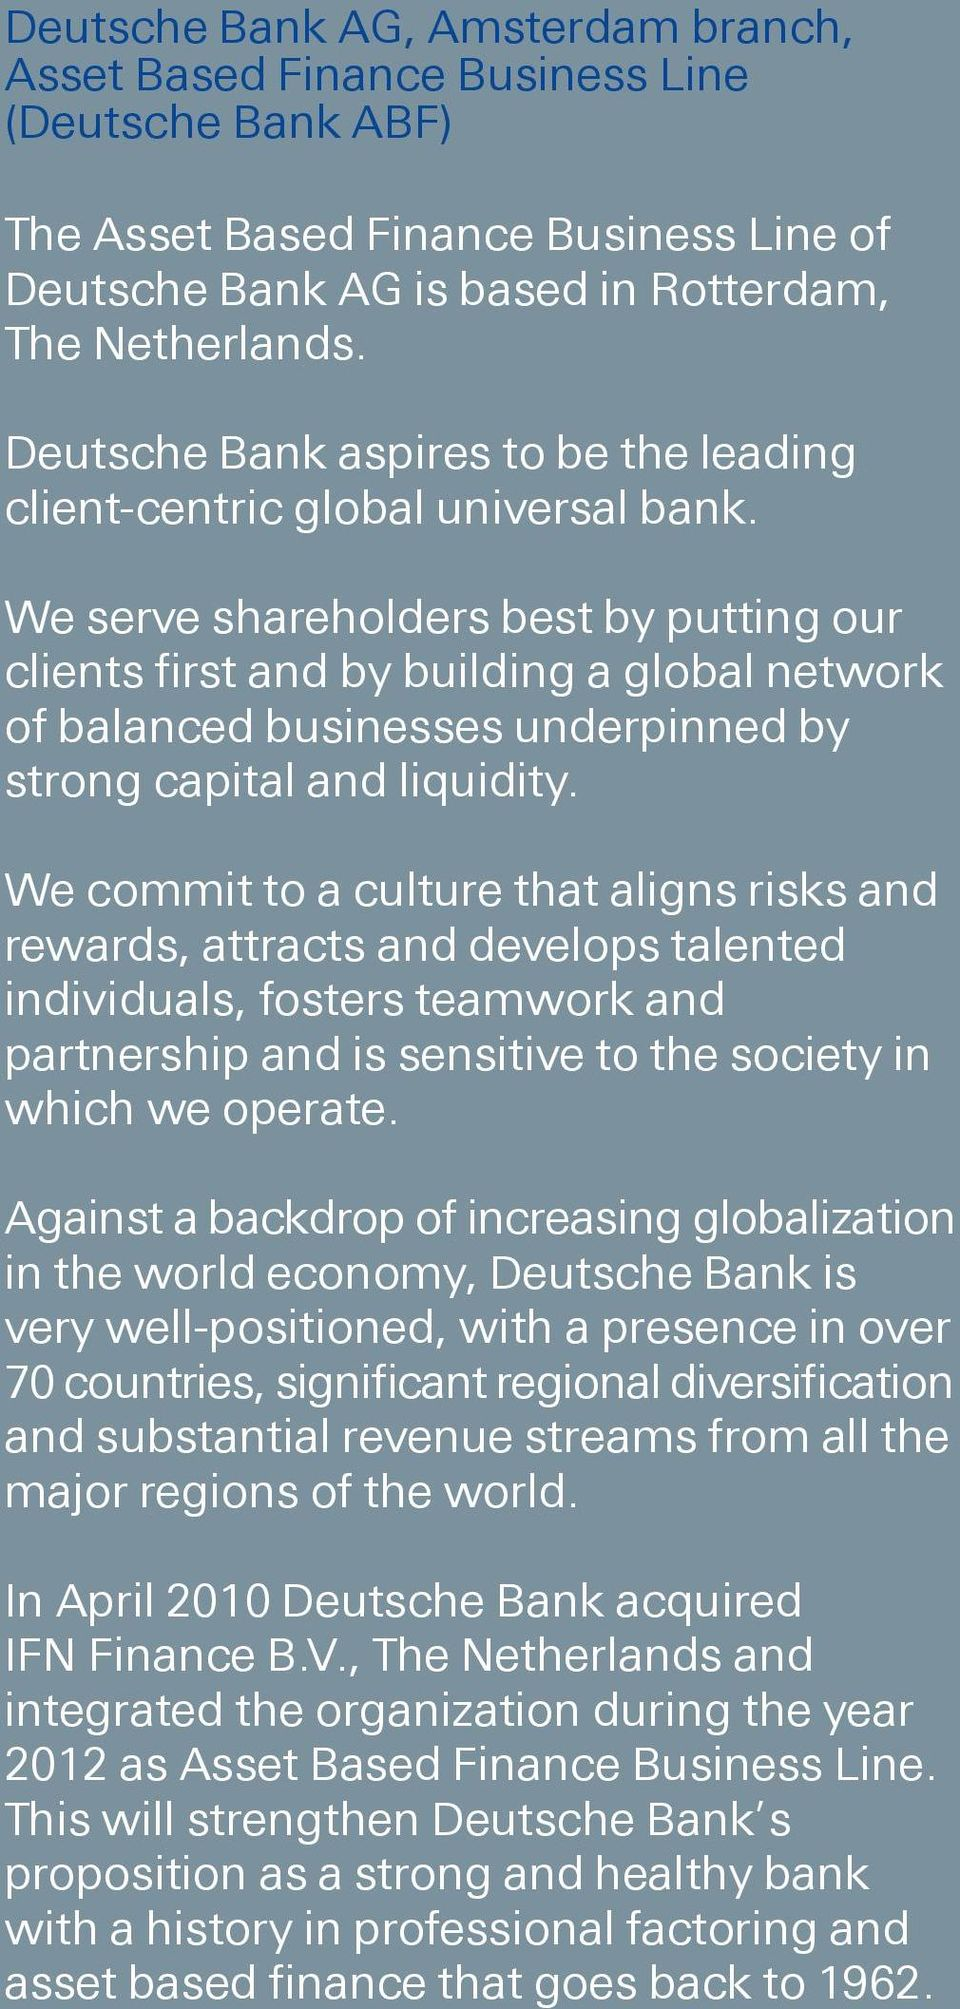 We serve shareholders best by putting our clients first and by building a global network of balanced businesses underpinned by strong capital and liquidity.